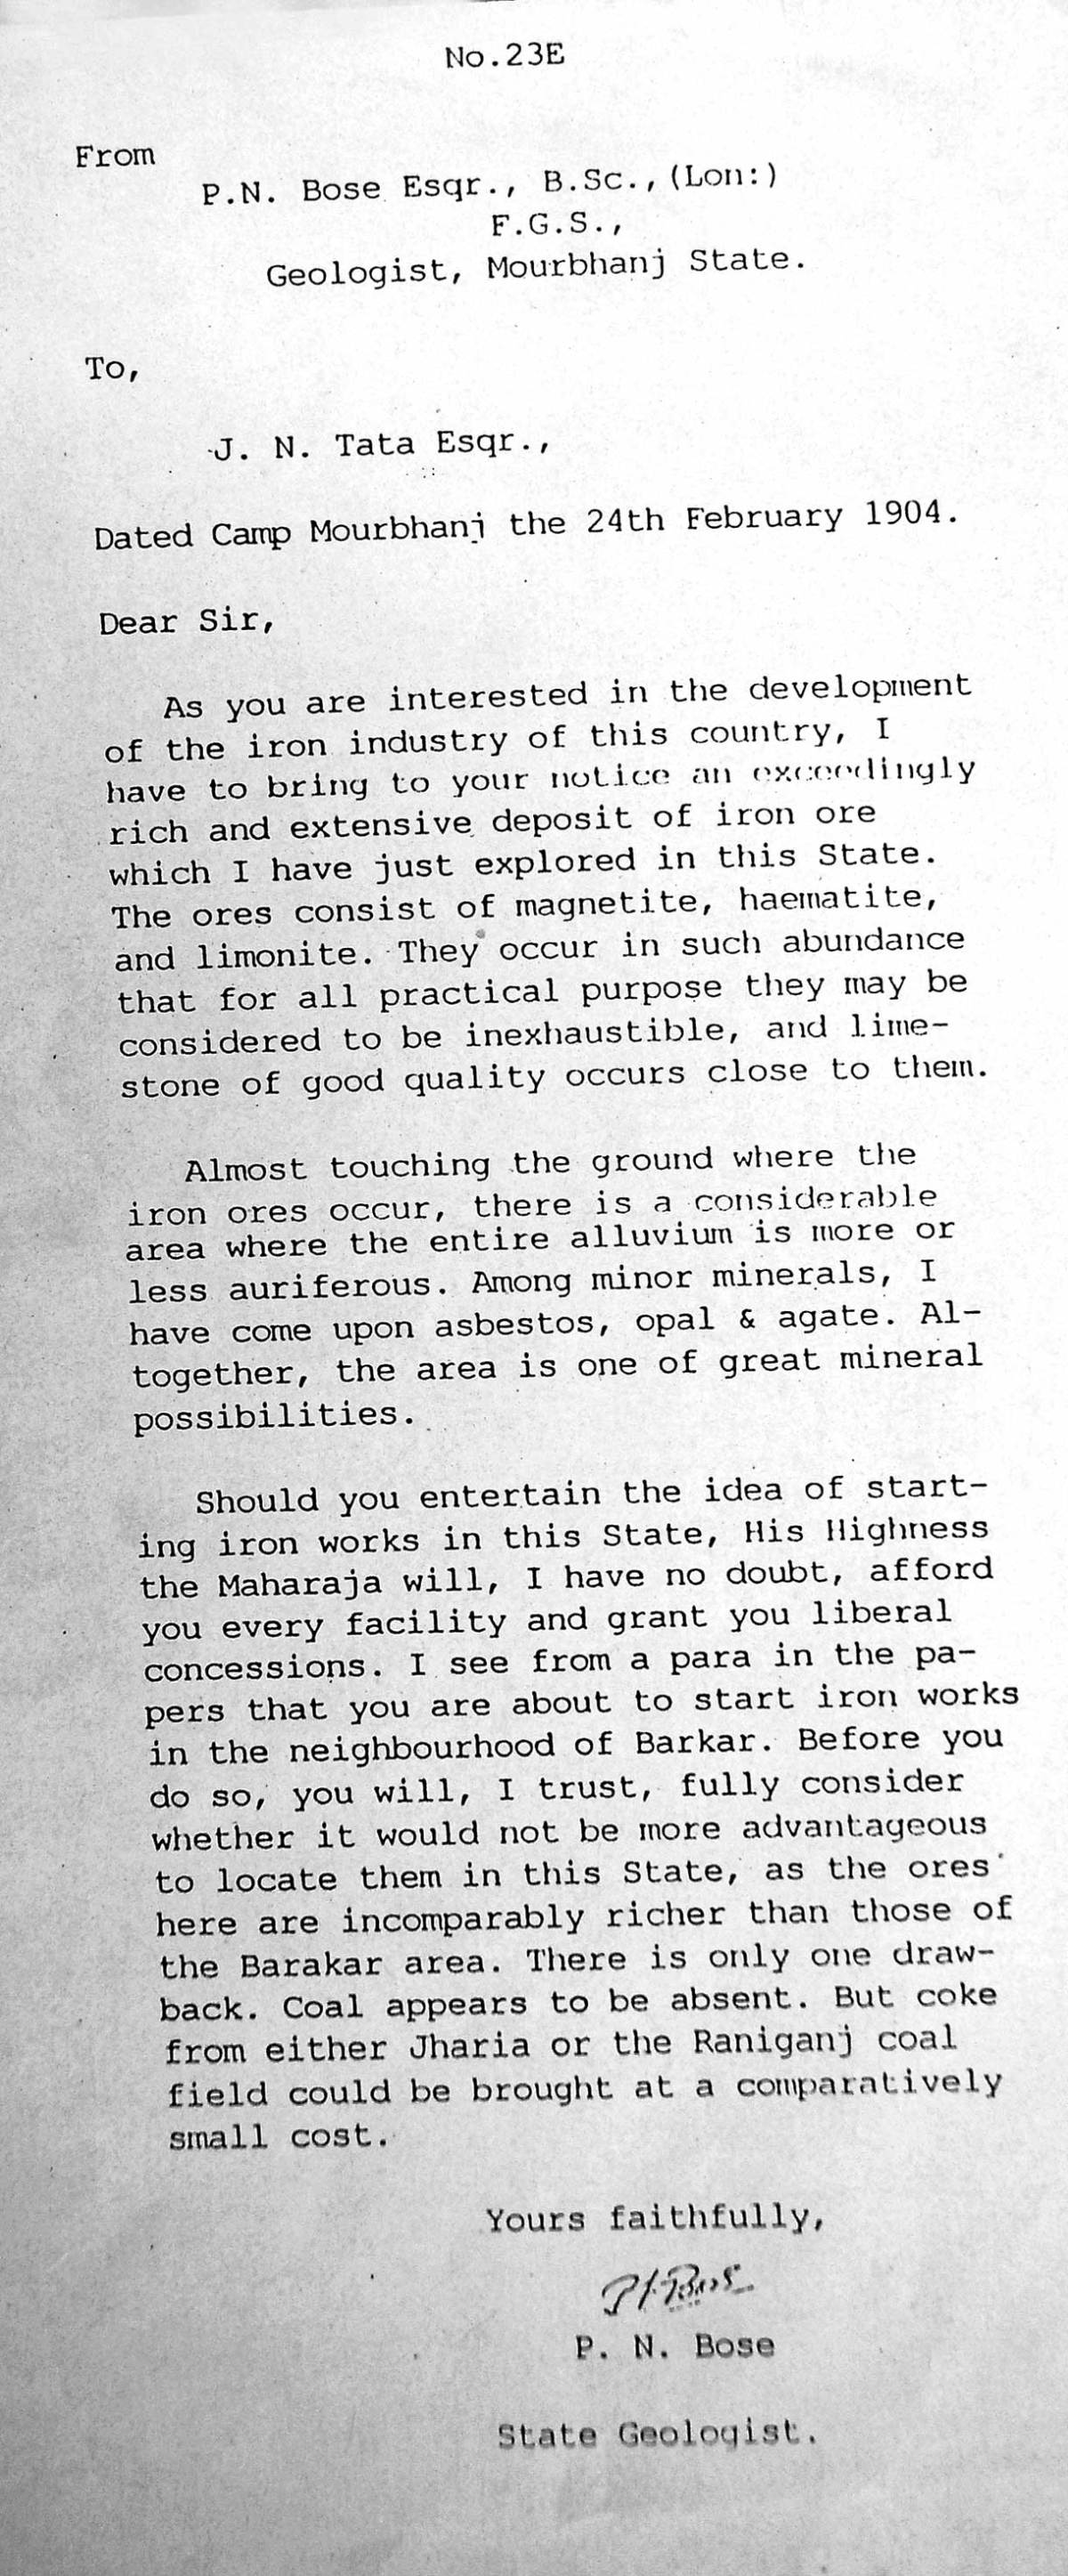 A copy of PN Bose's letter to JN Tata shared by Tata Steel